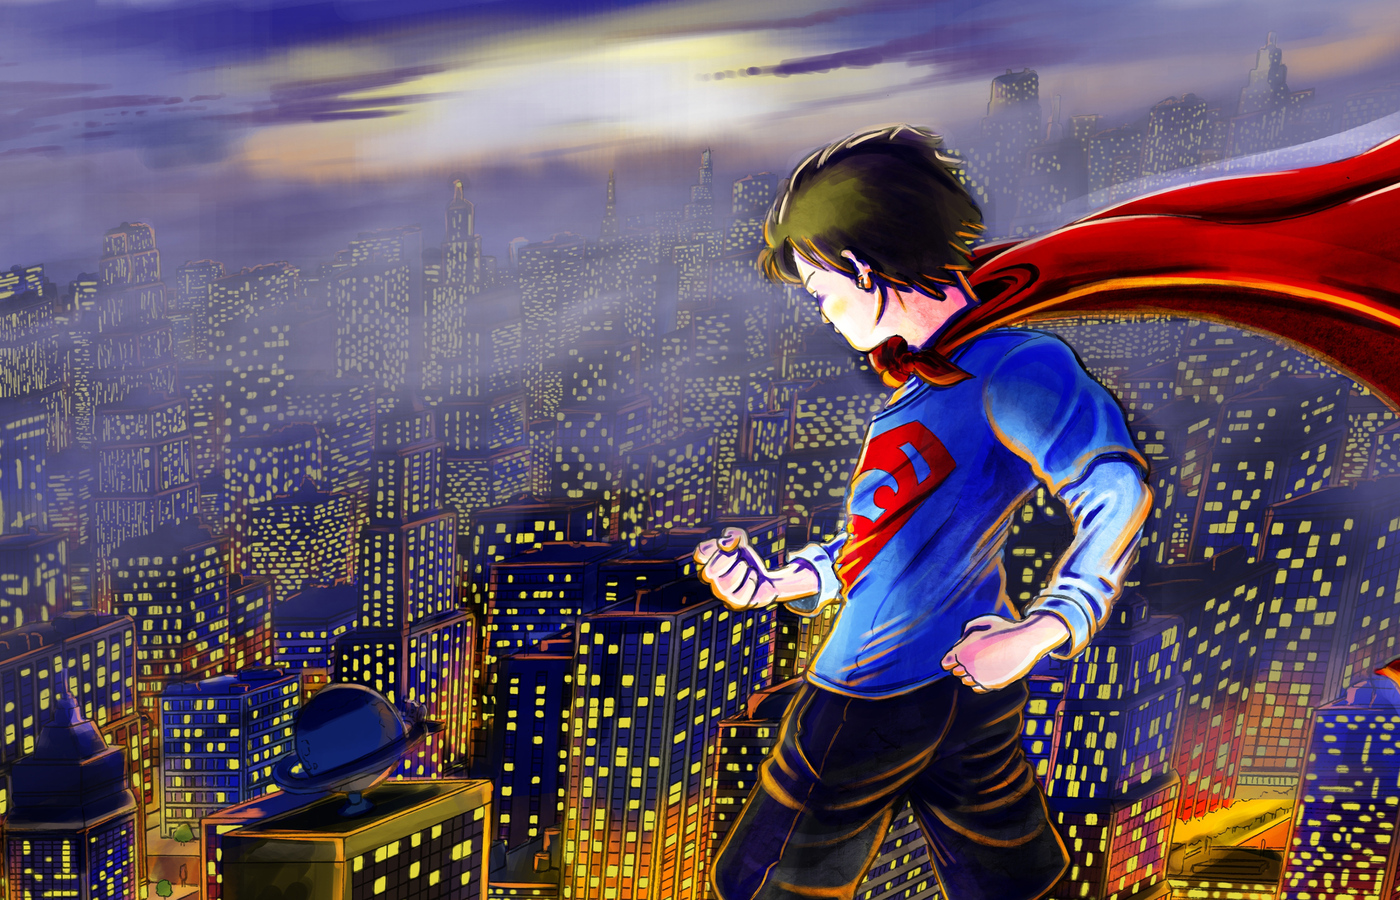 kid-superman-4k-vt.jpg